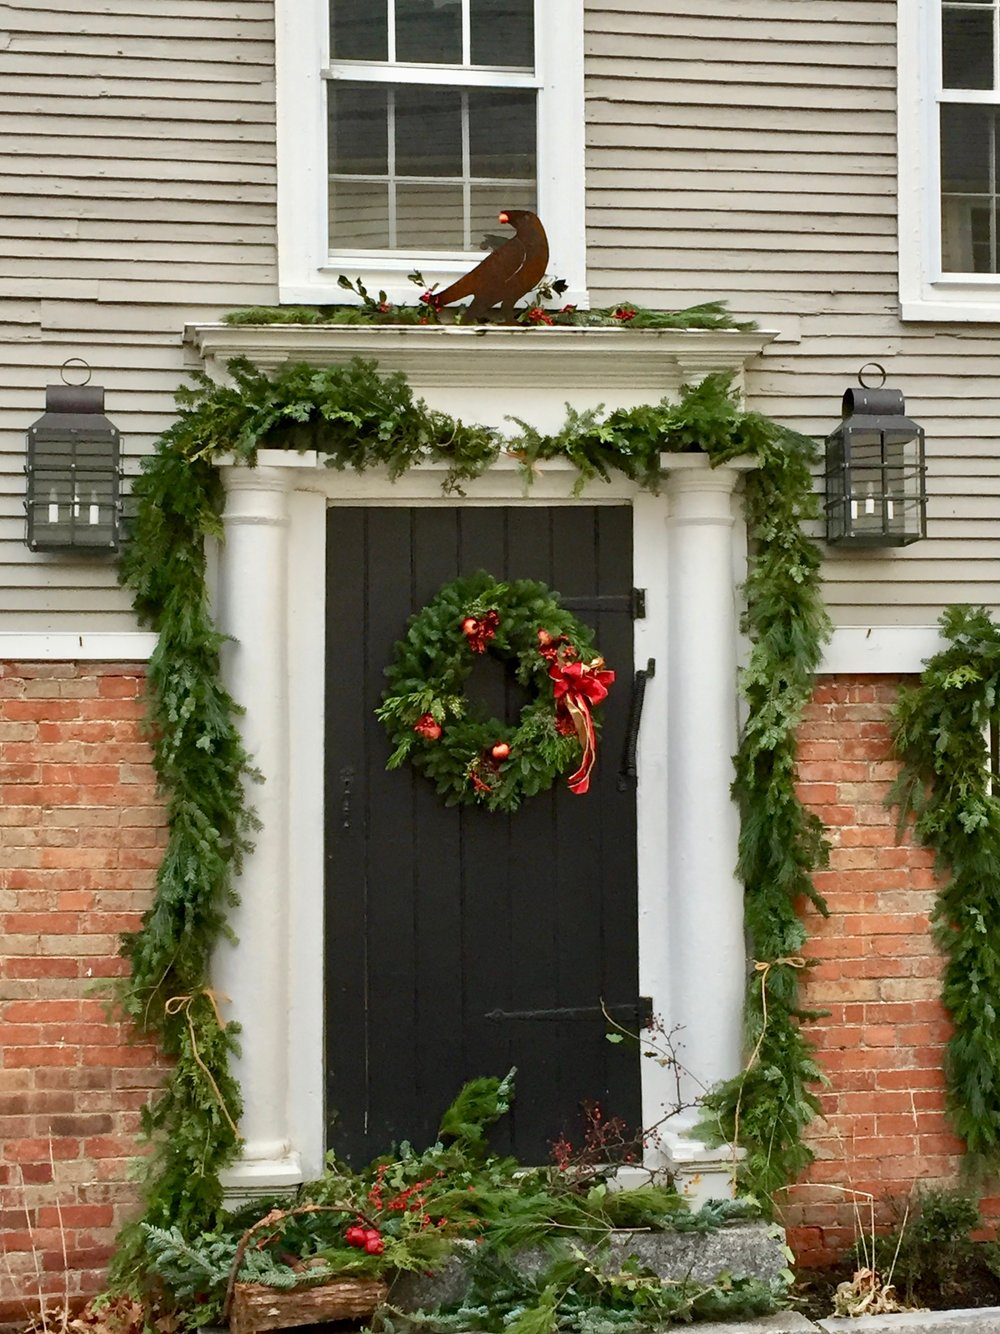 Christmas Wreath ideas from New England - portsmouth nh 13.jpg